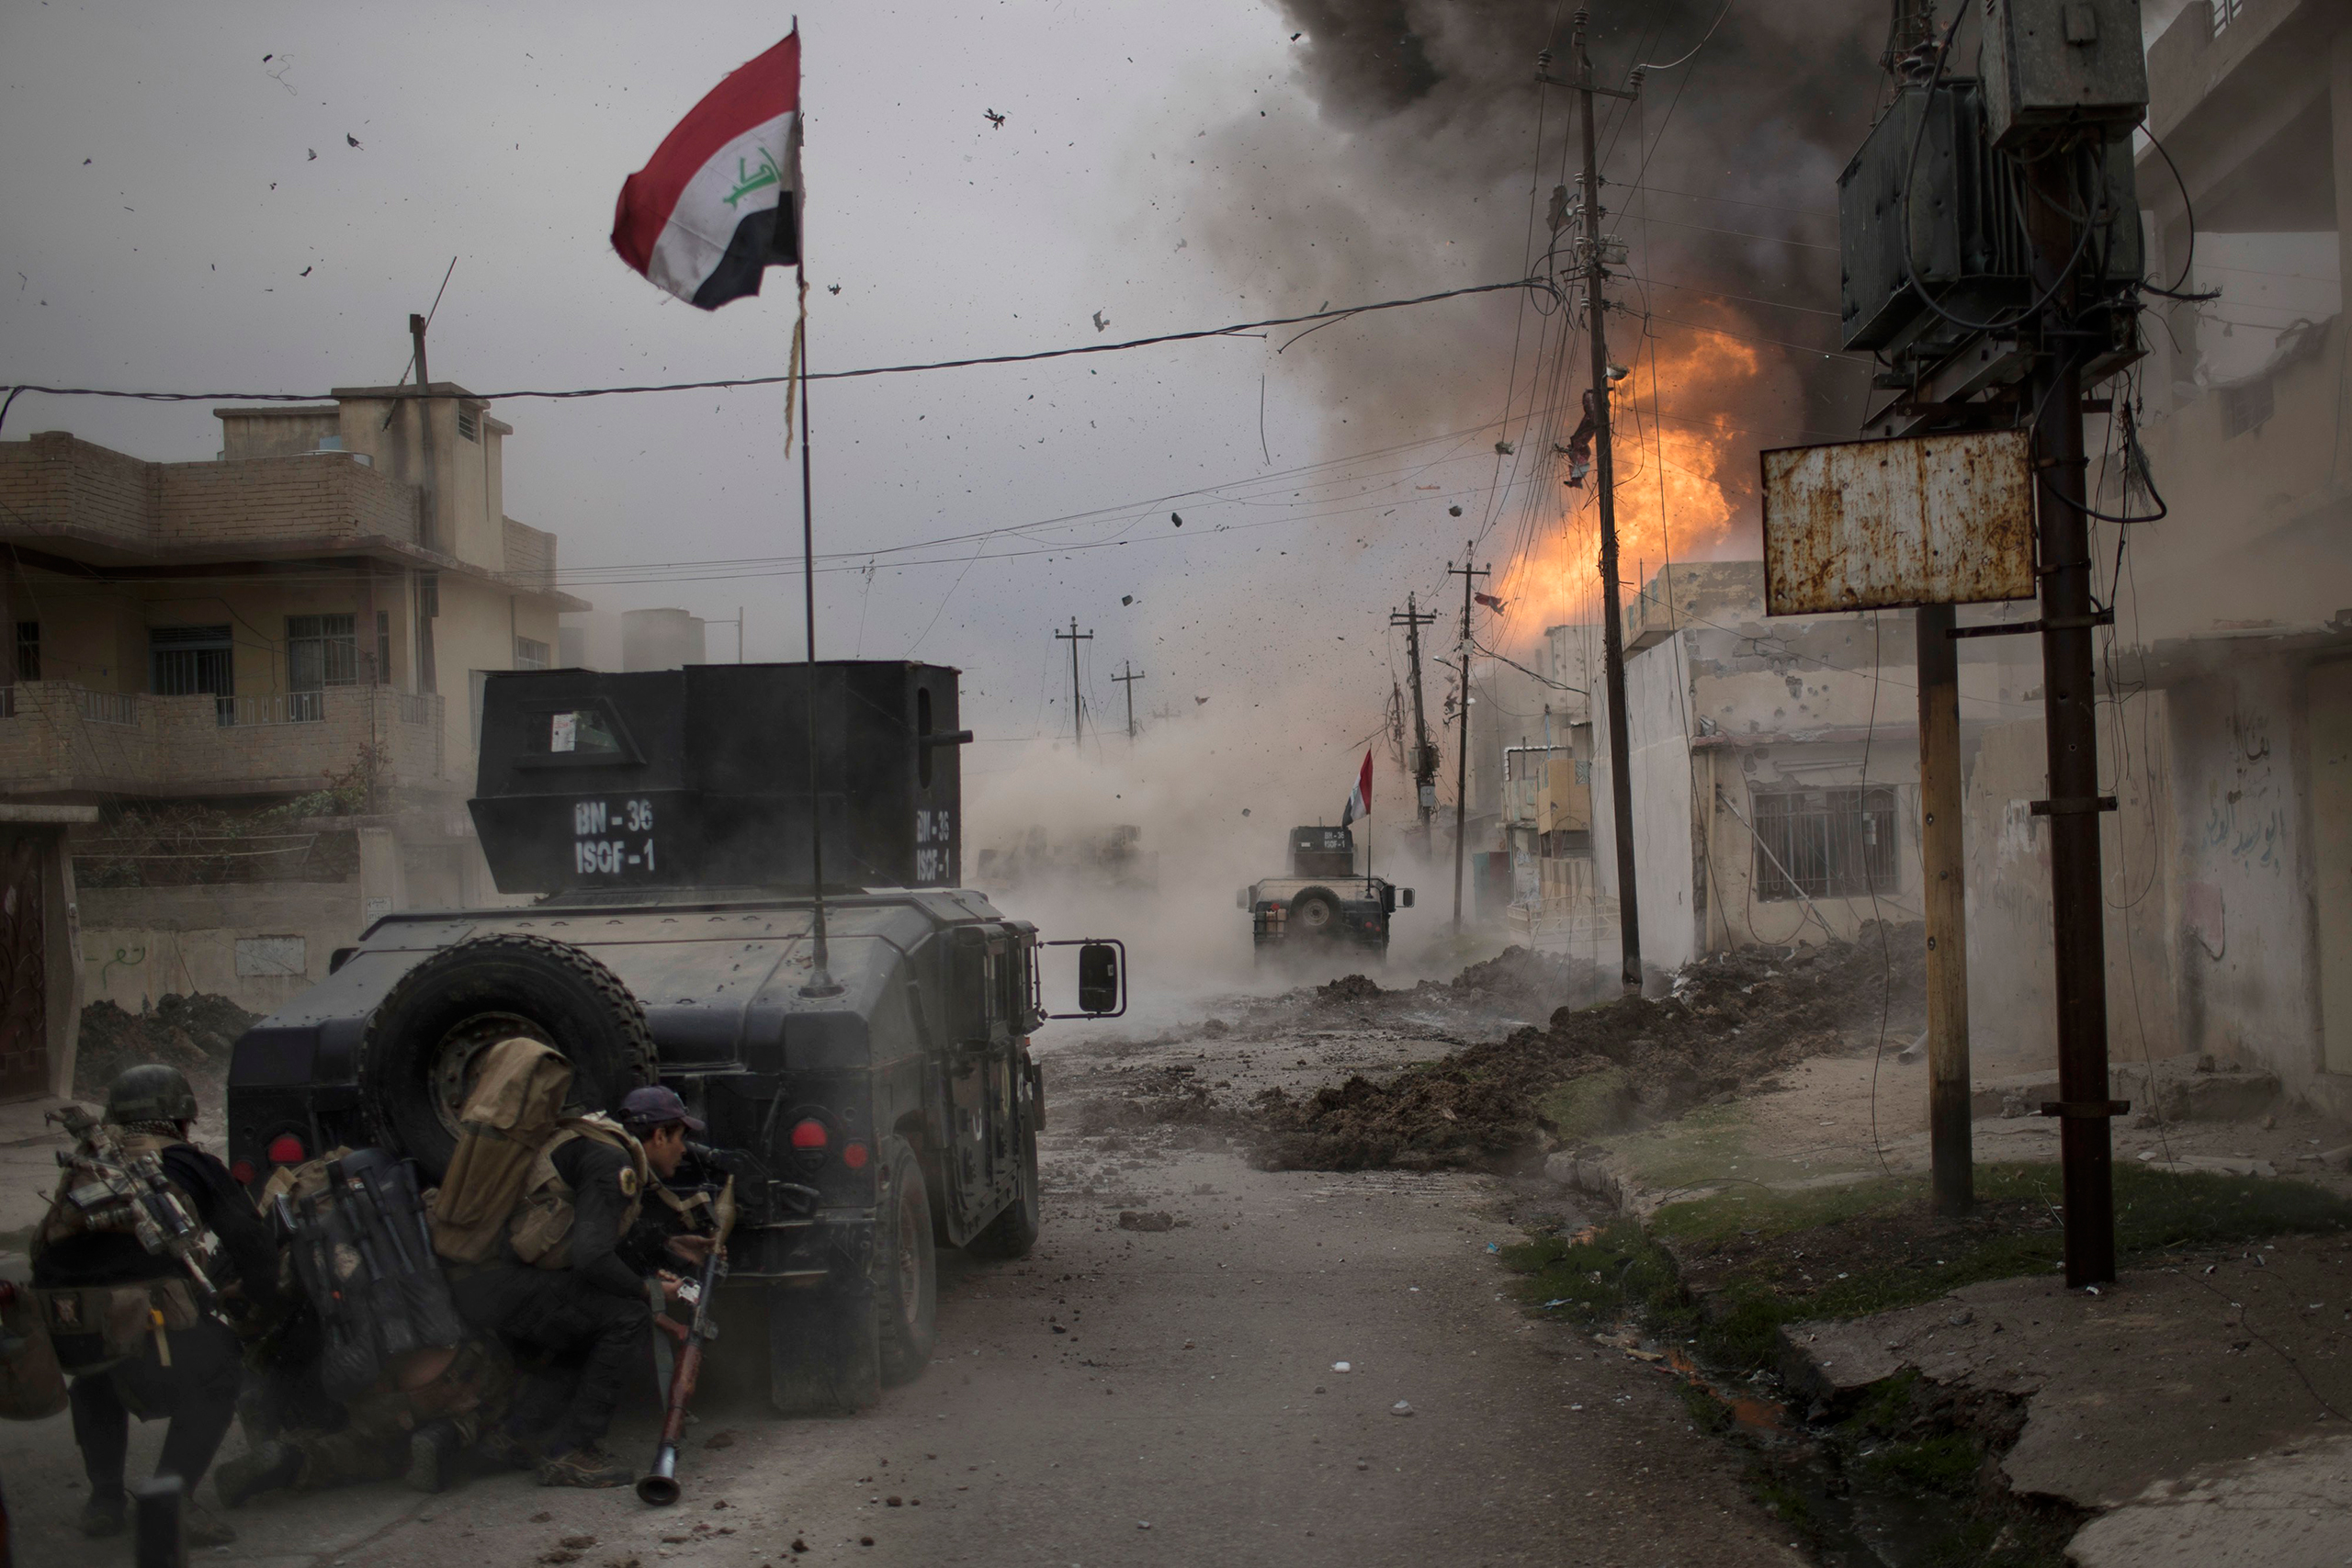 A car bomb explodes next to armored vehicles belonging to Iraqi Special Forces as they advance toward ISIS-held territory in Mosul on Nov. 16, 2016. Troops have established a foothold in the city's east from where they are driving northward into the Tahrir neighborhood.